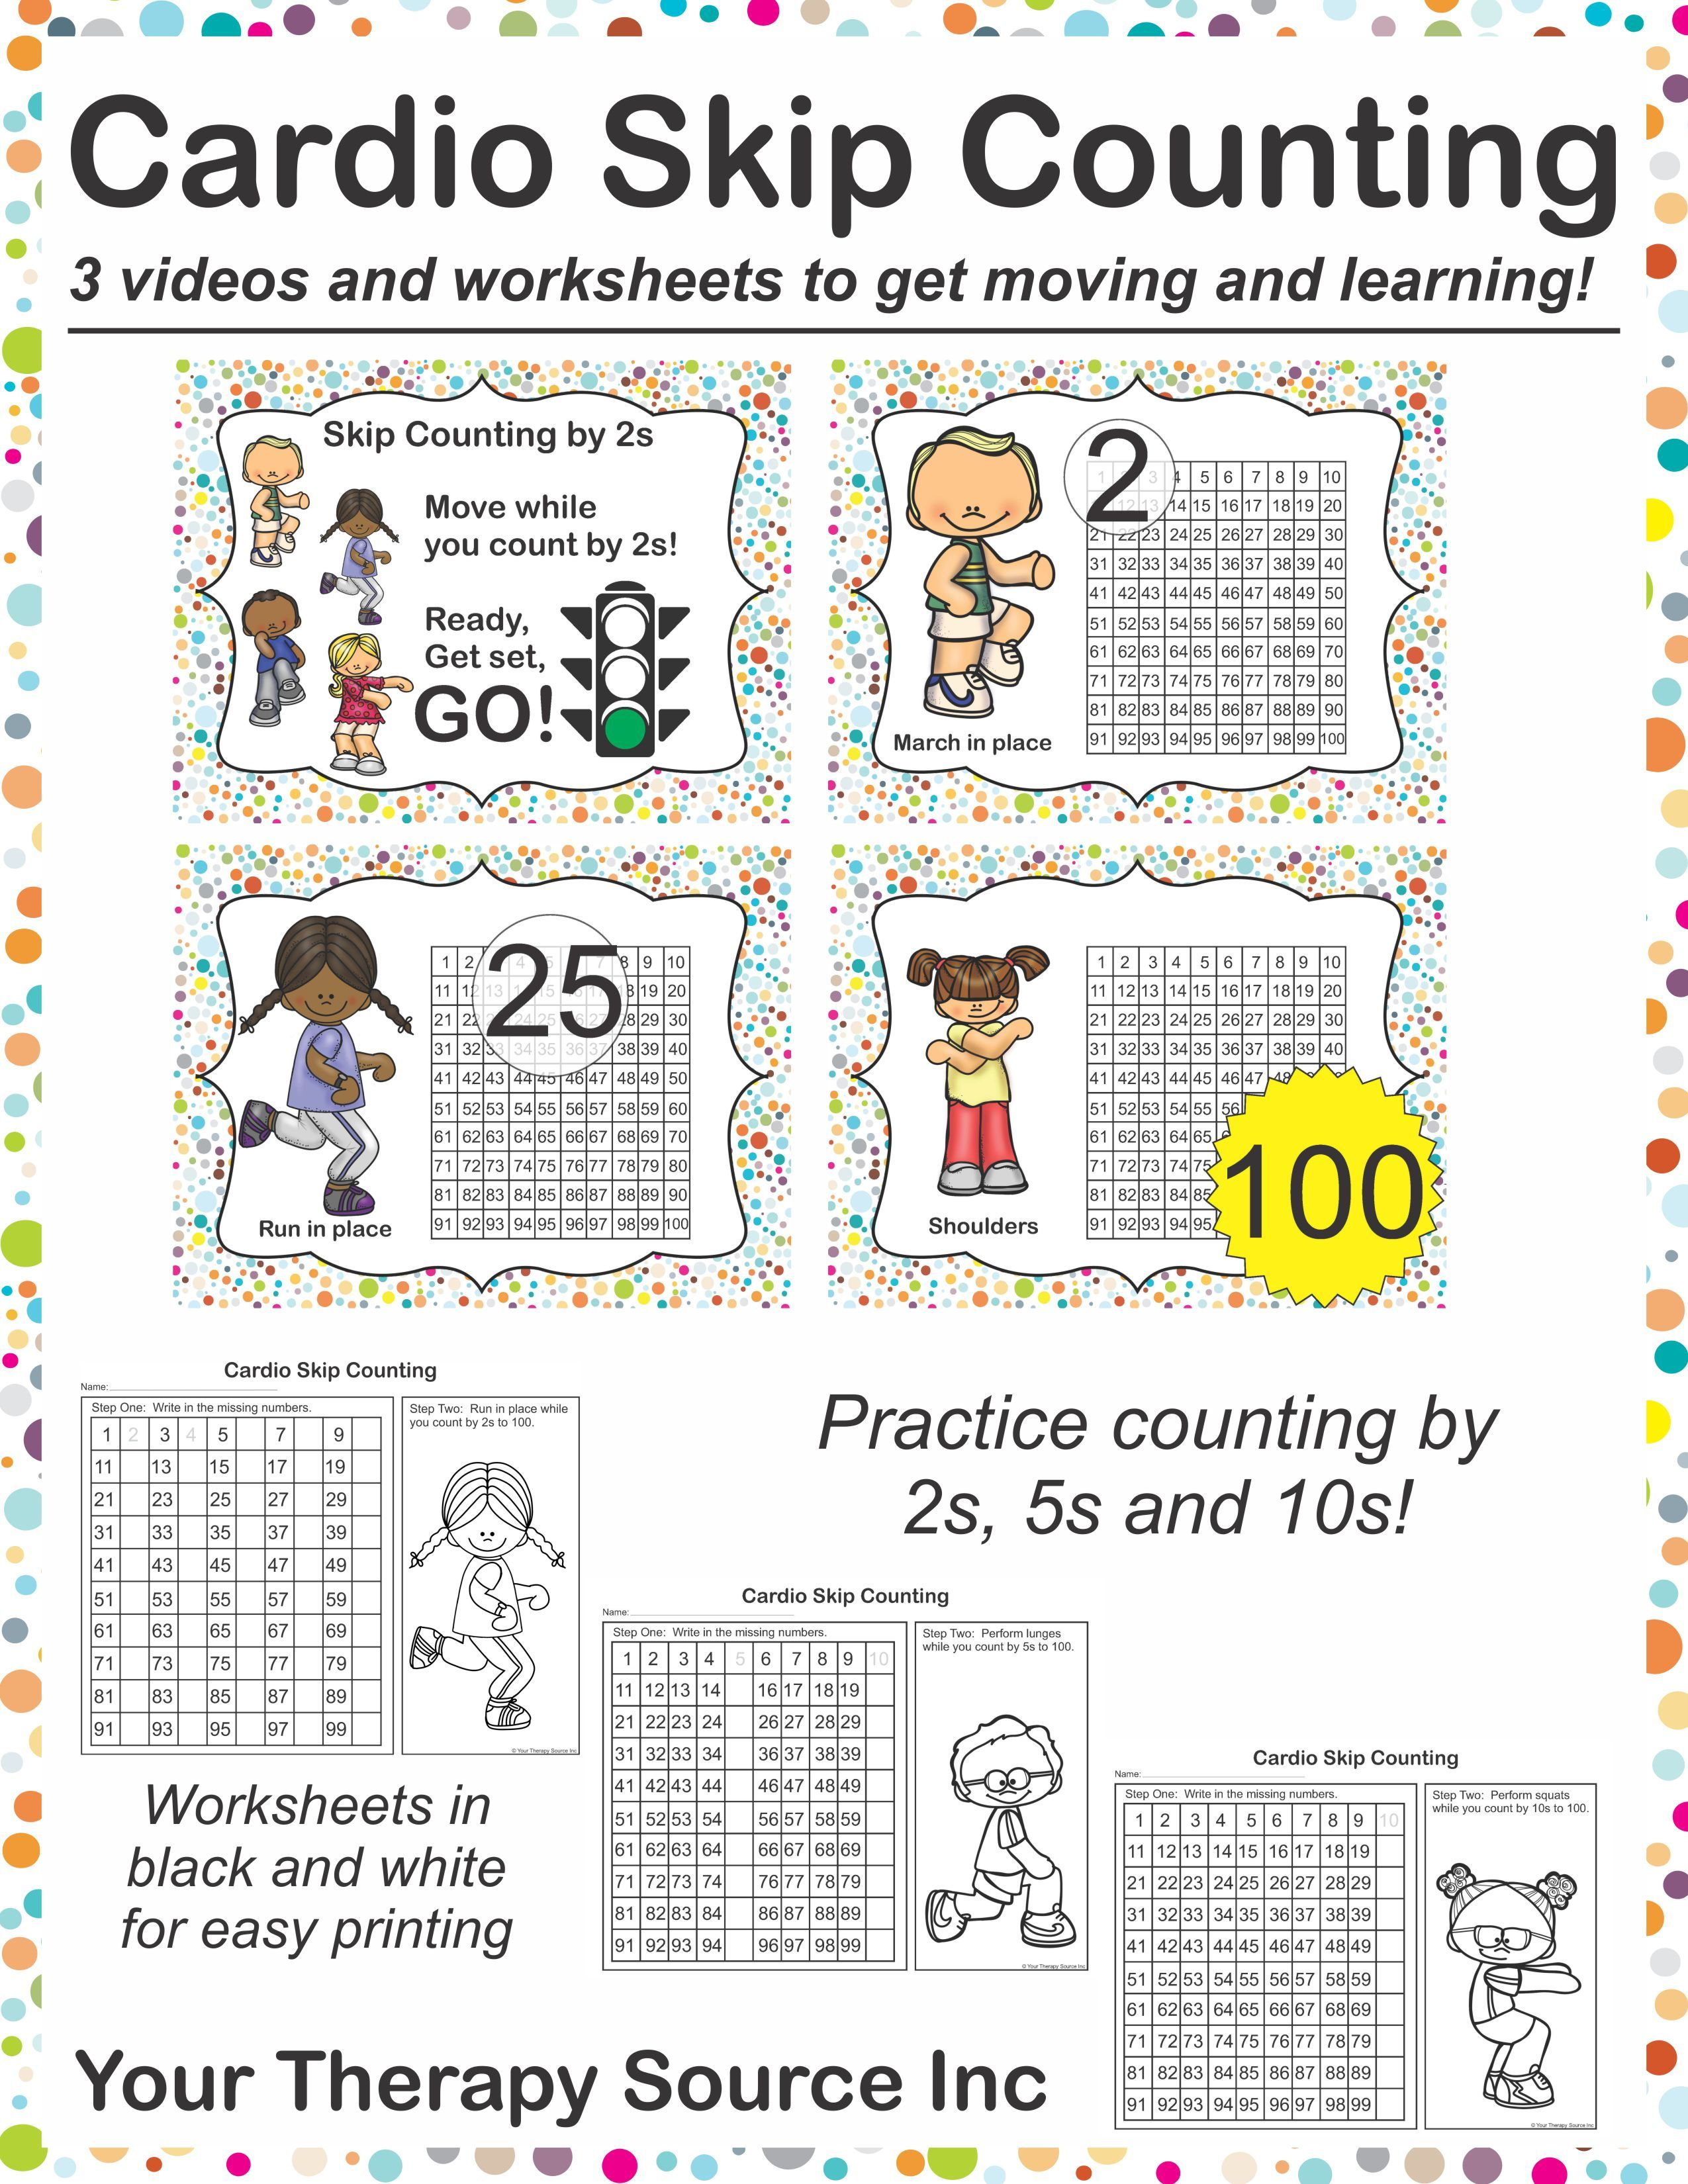 Cardio Skip Counting Videos And Worksheets